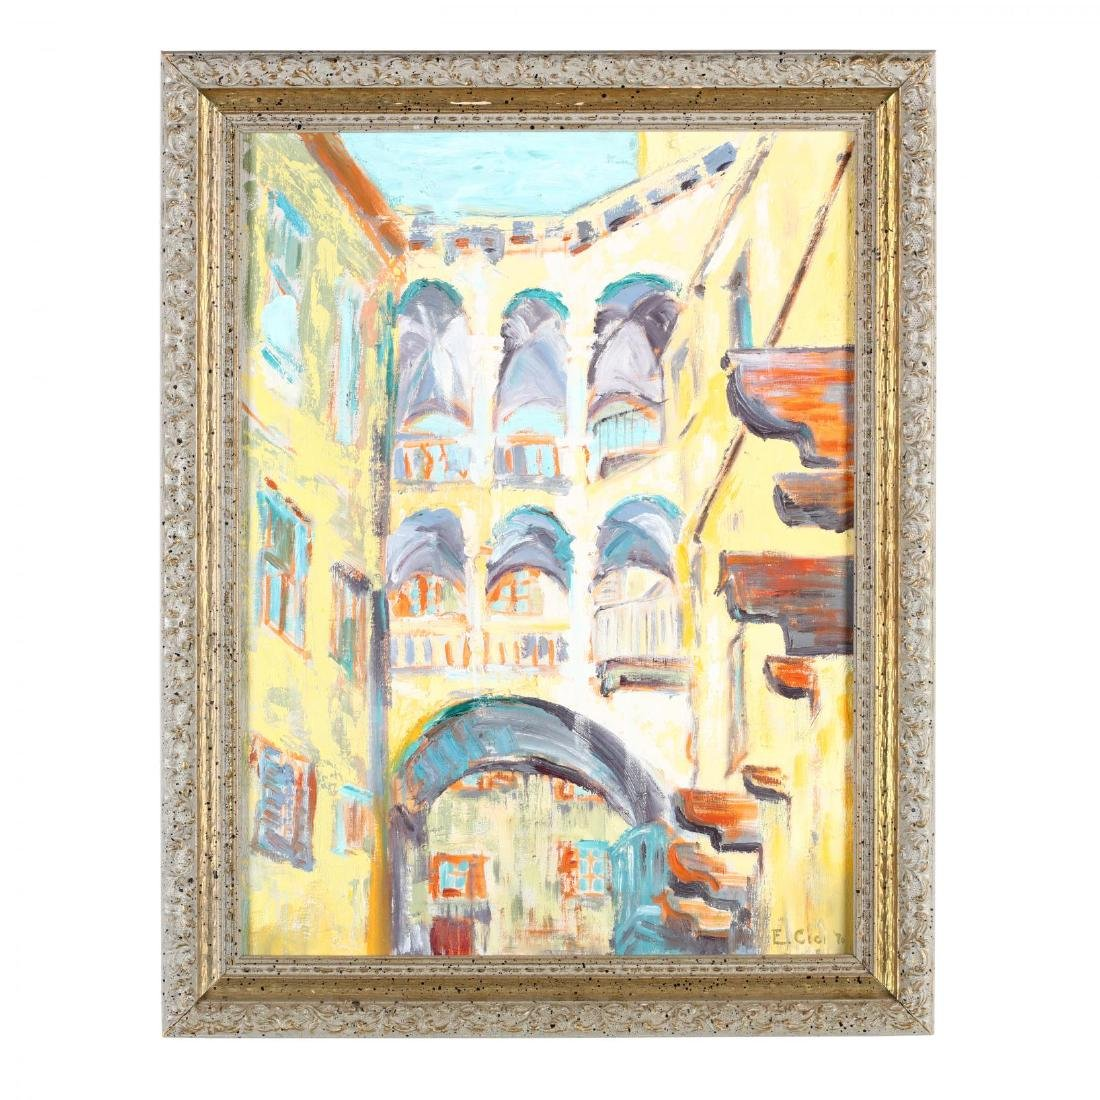 A Vintage Impressionist Architectural Painting